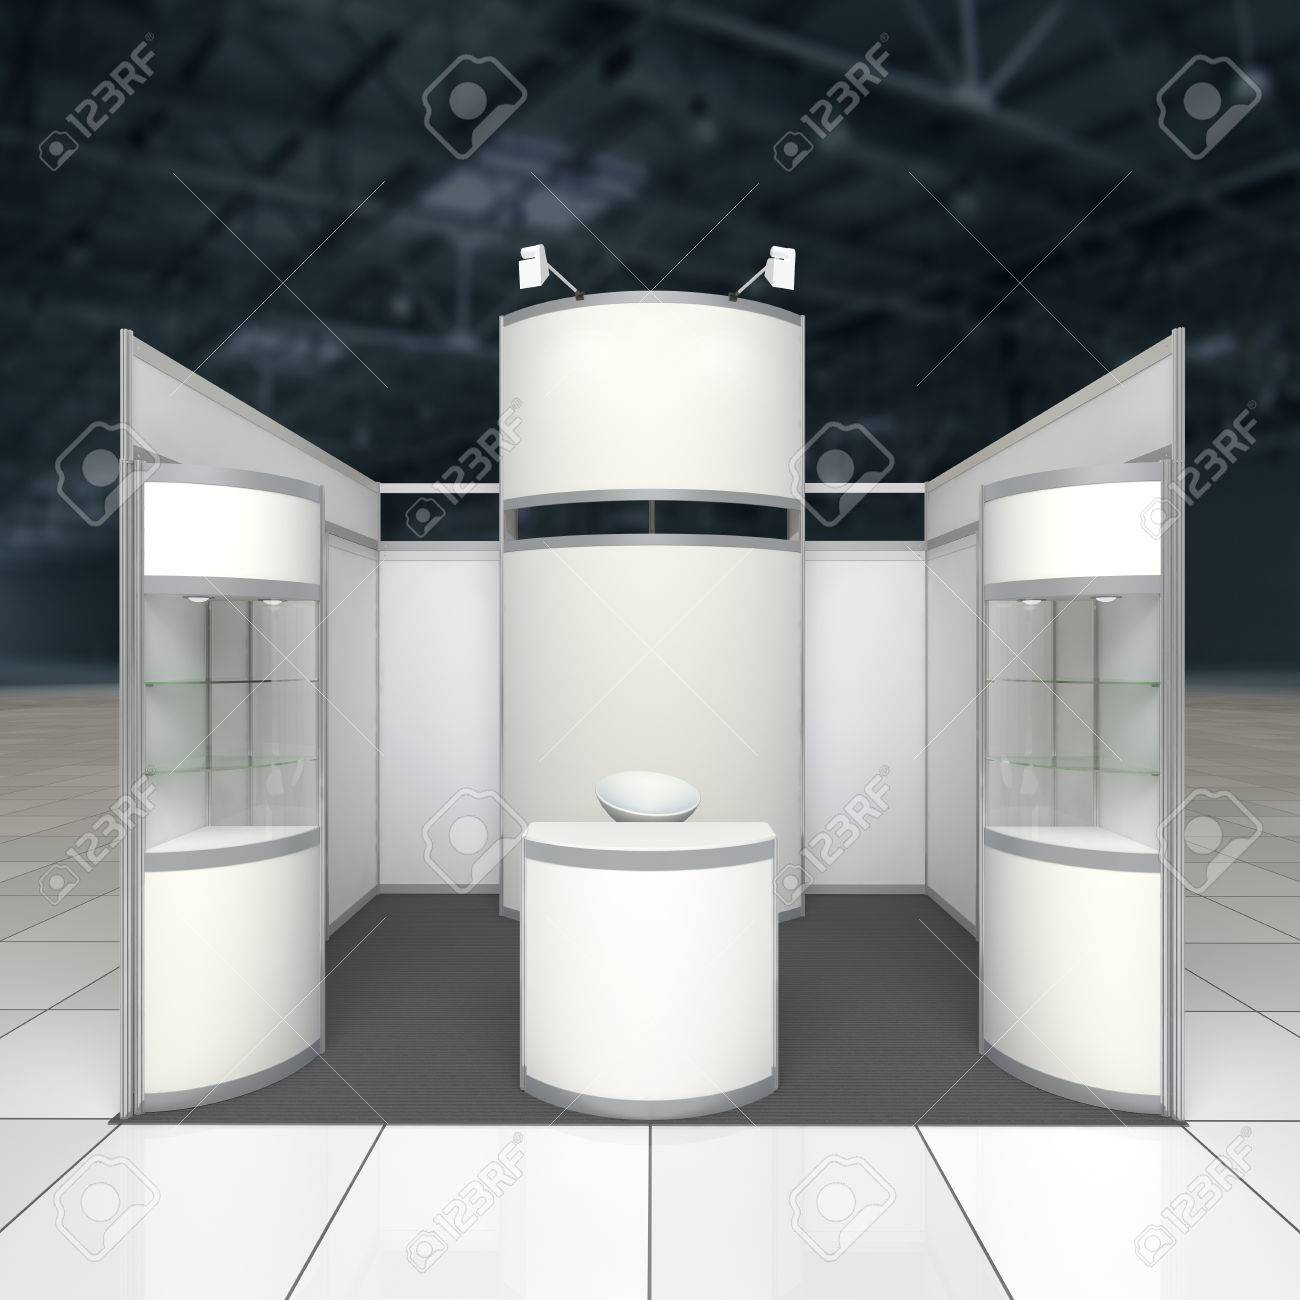 Exhibition Stand Reception : Simple exhibition stand with blank radial display reception counter